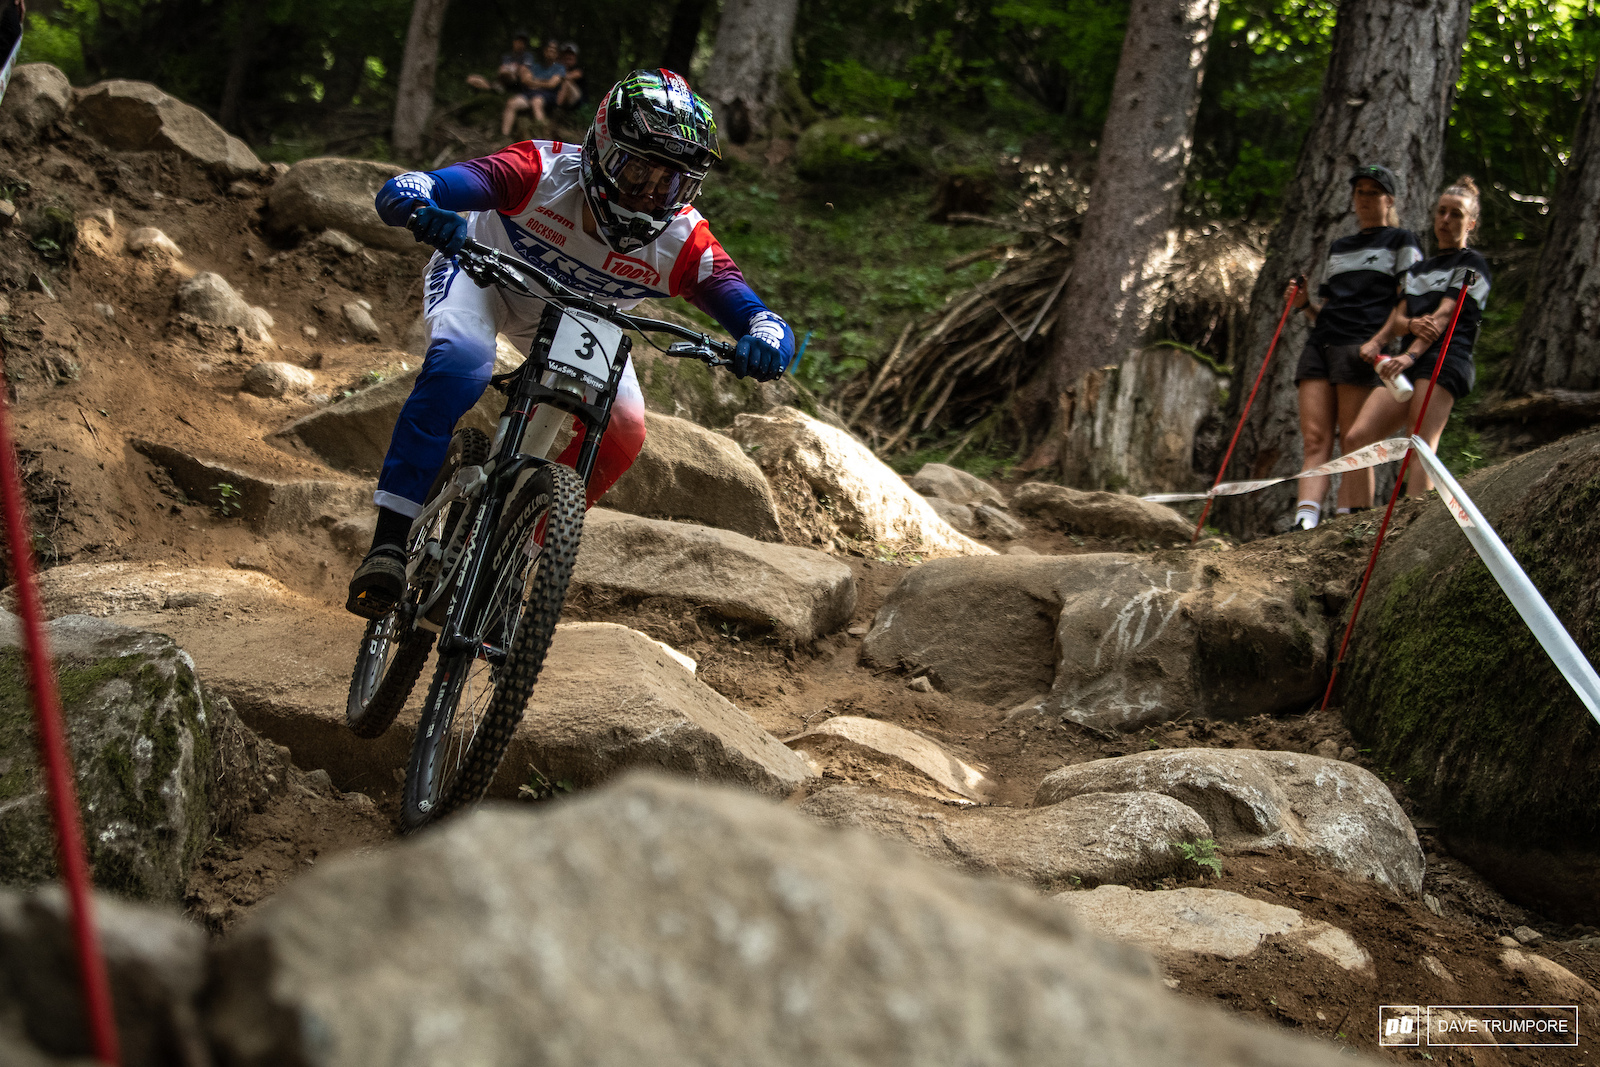 Loris Vergier fresh of a win in Maribor looks fast and confident